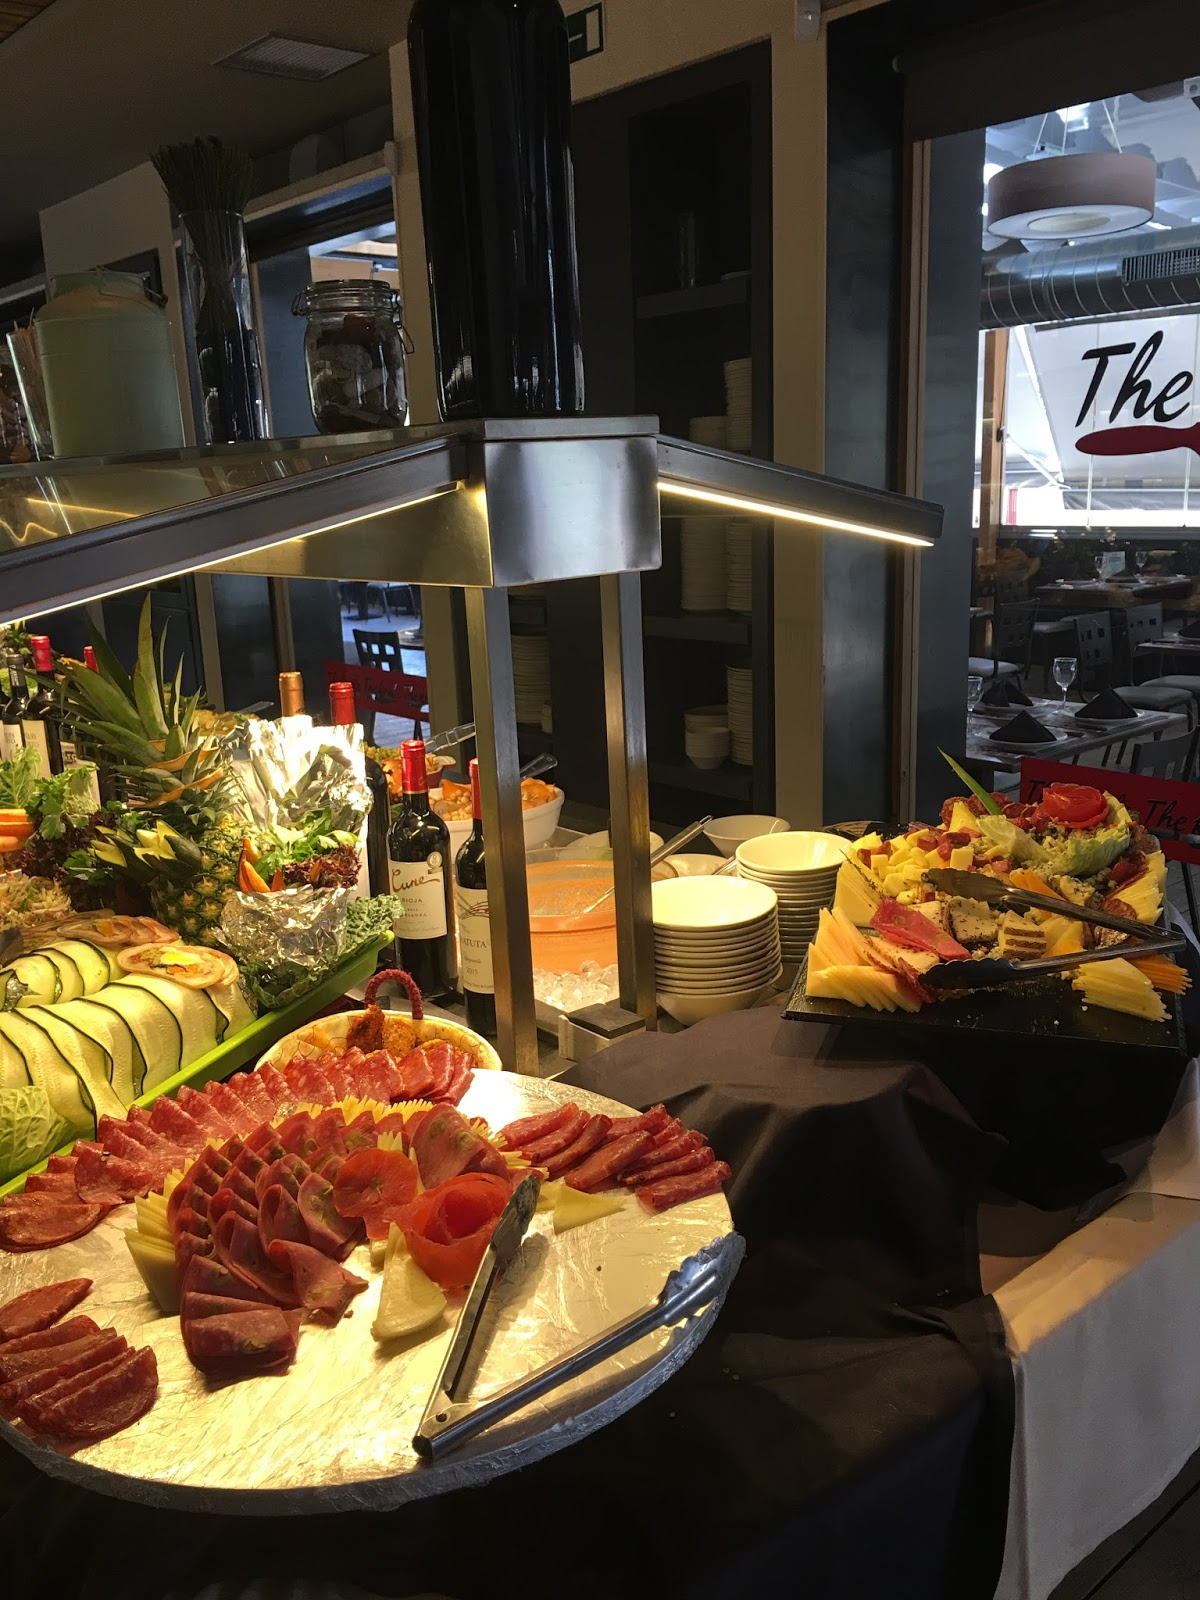 Buffet Libres En Madrid Ruta Martuka The Knife Buffet Libre De Parrilla